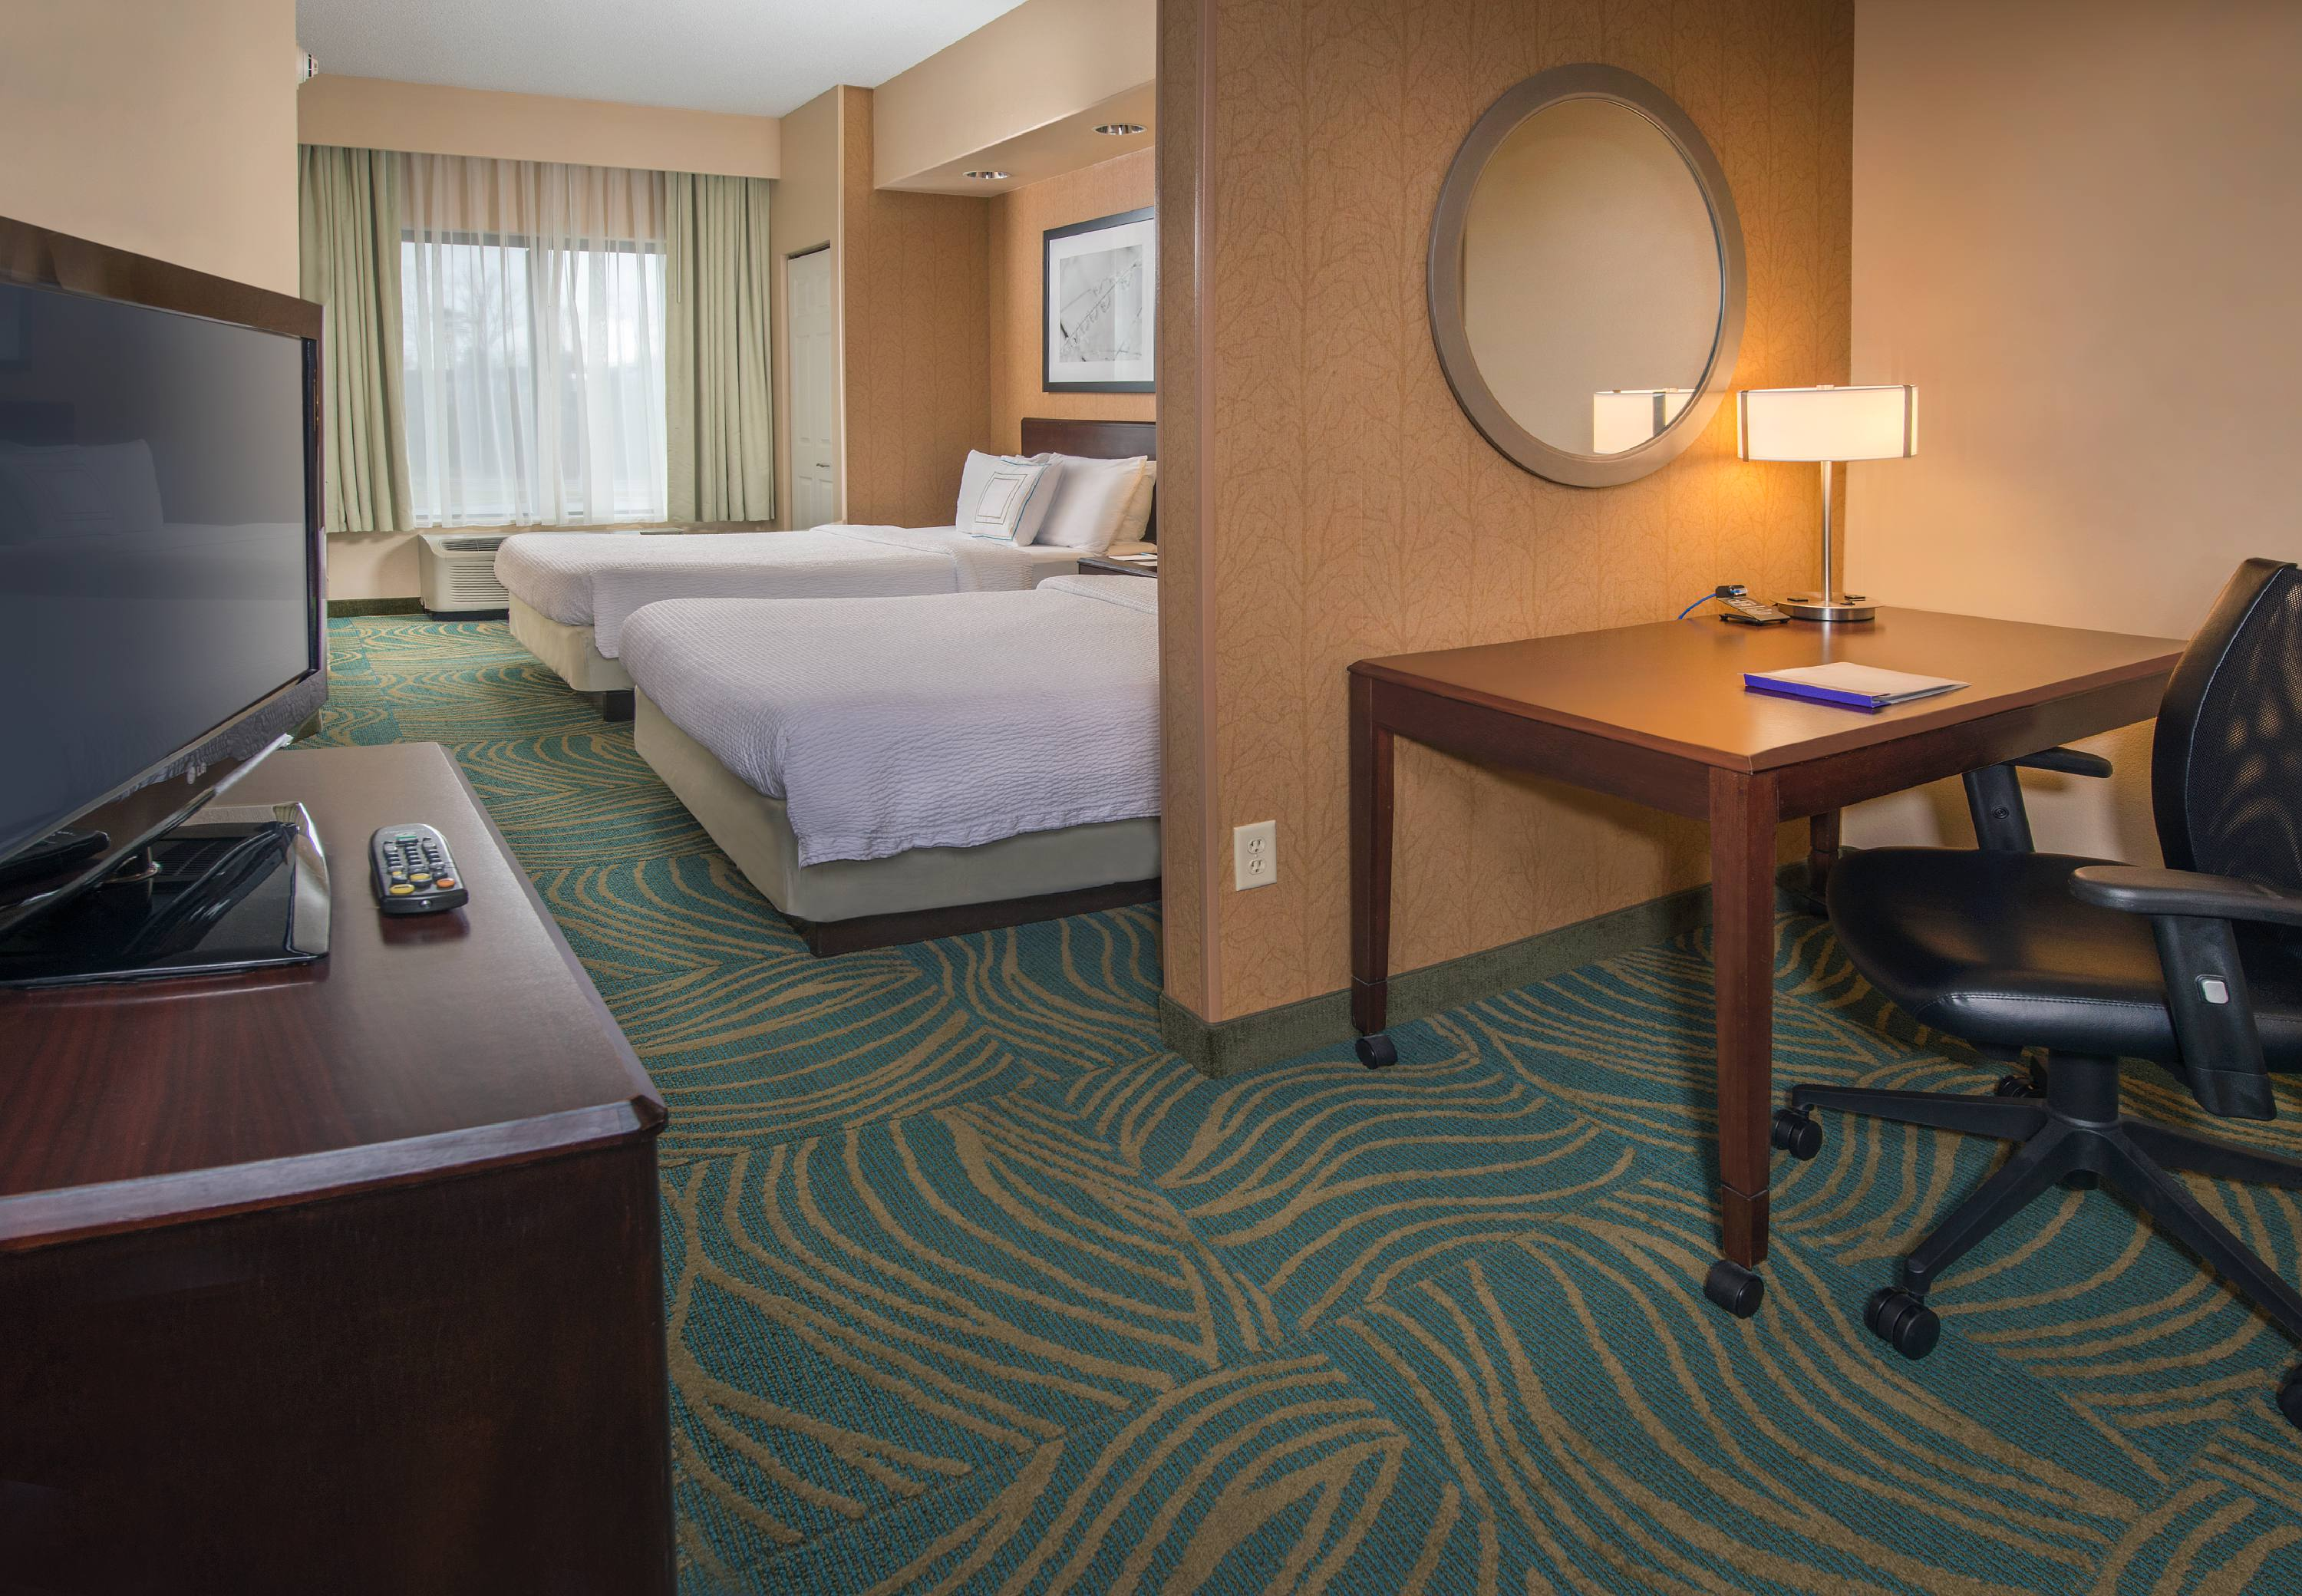 SpringHill Suites by Marriott Edgewood Aberdeen image 6